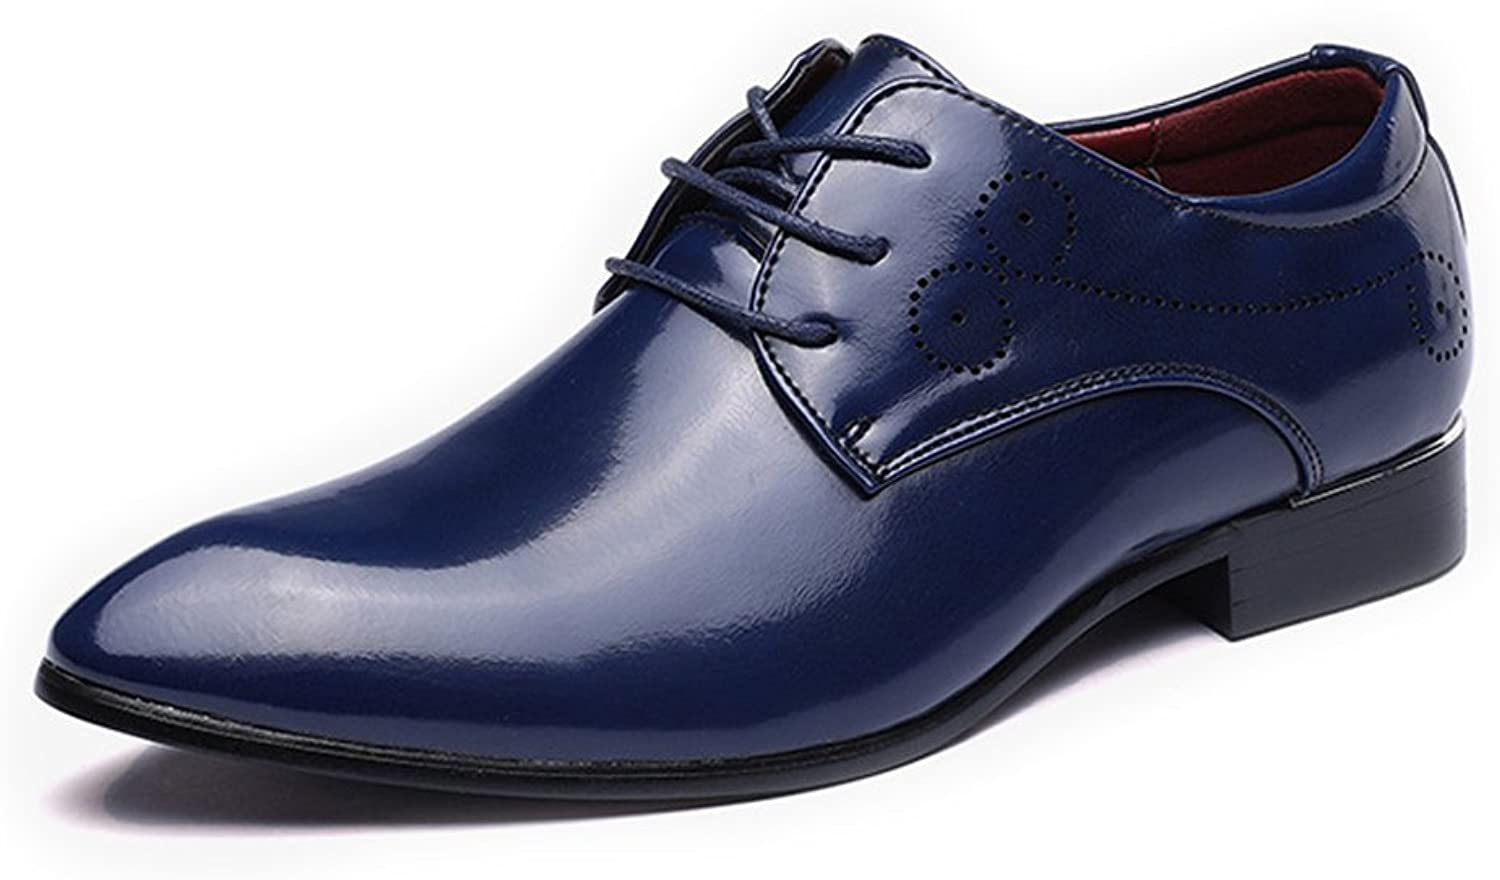 Classic Men's shoes Smooth Upper PU Leather Lace Up Pointed Toe Breathable Lined Oxfords (color   blueee, Size   9.5 UK)